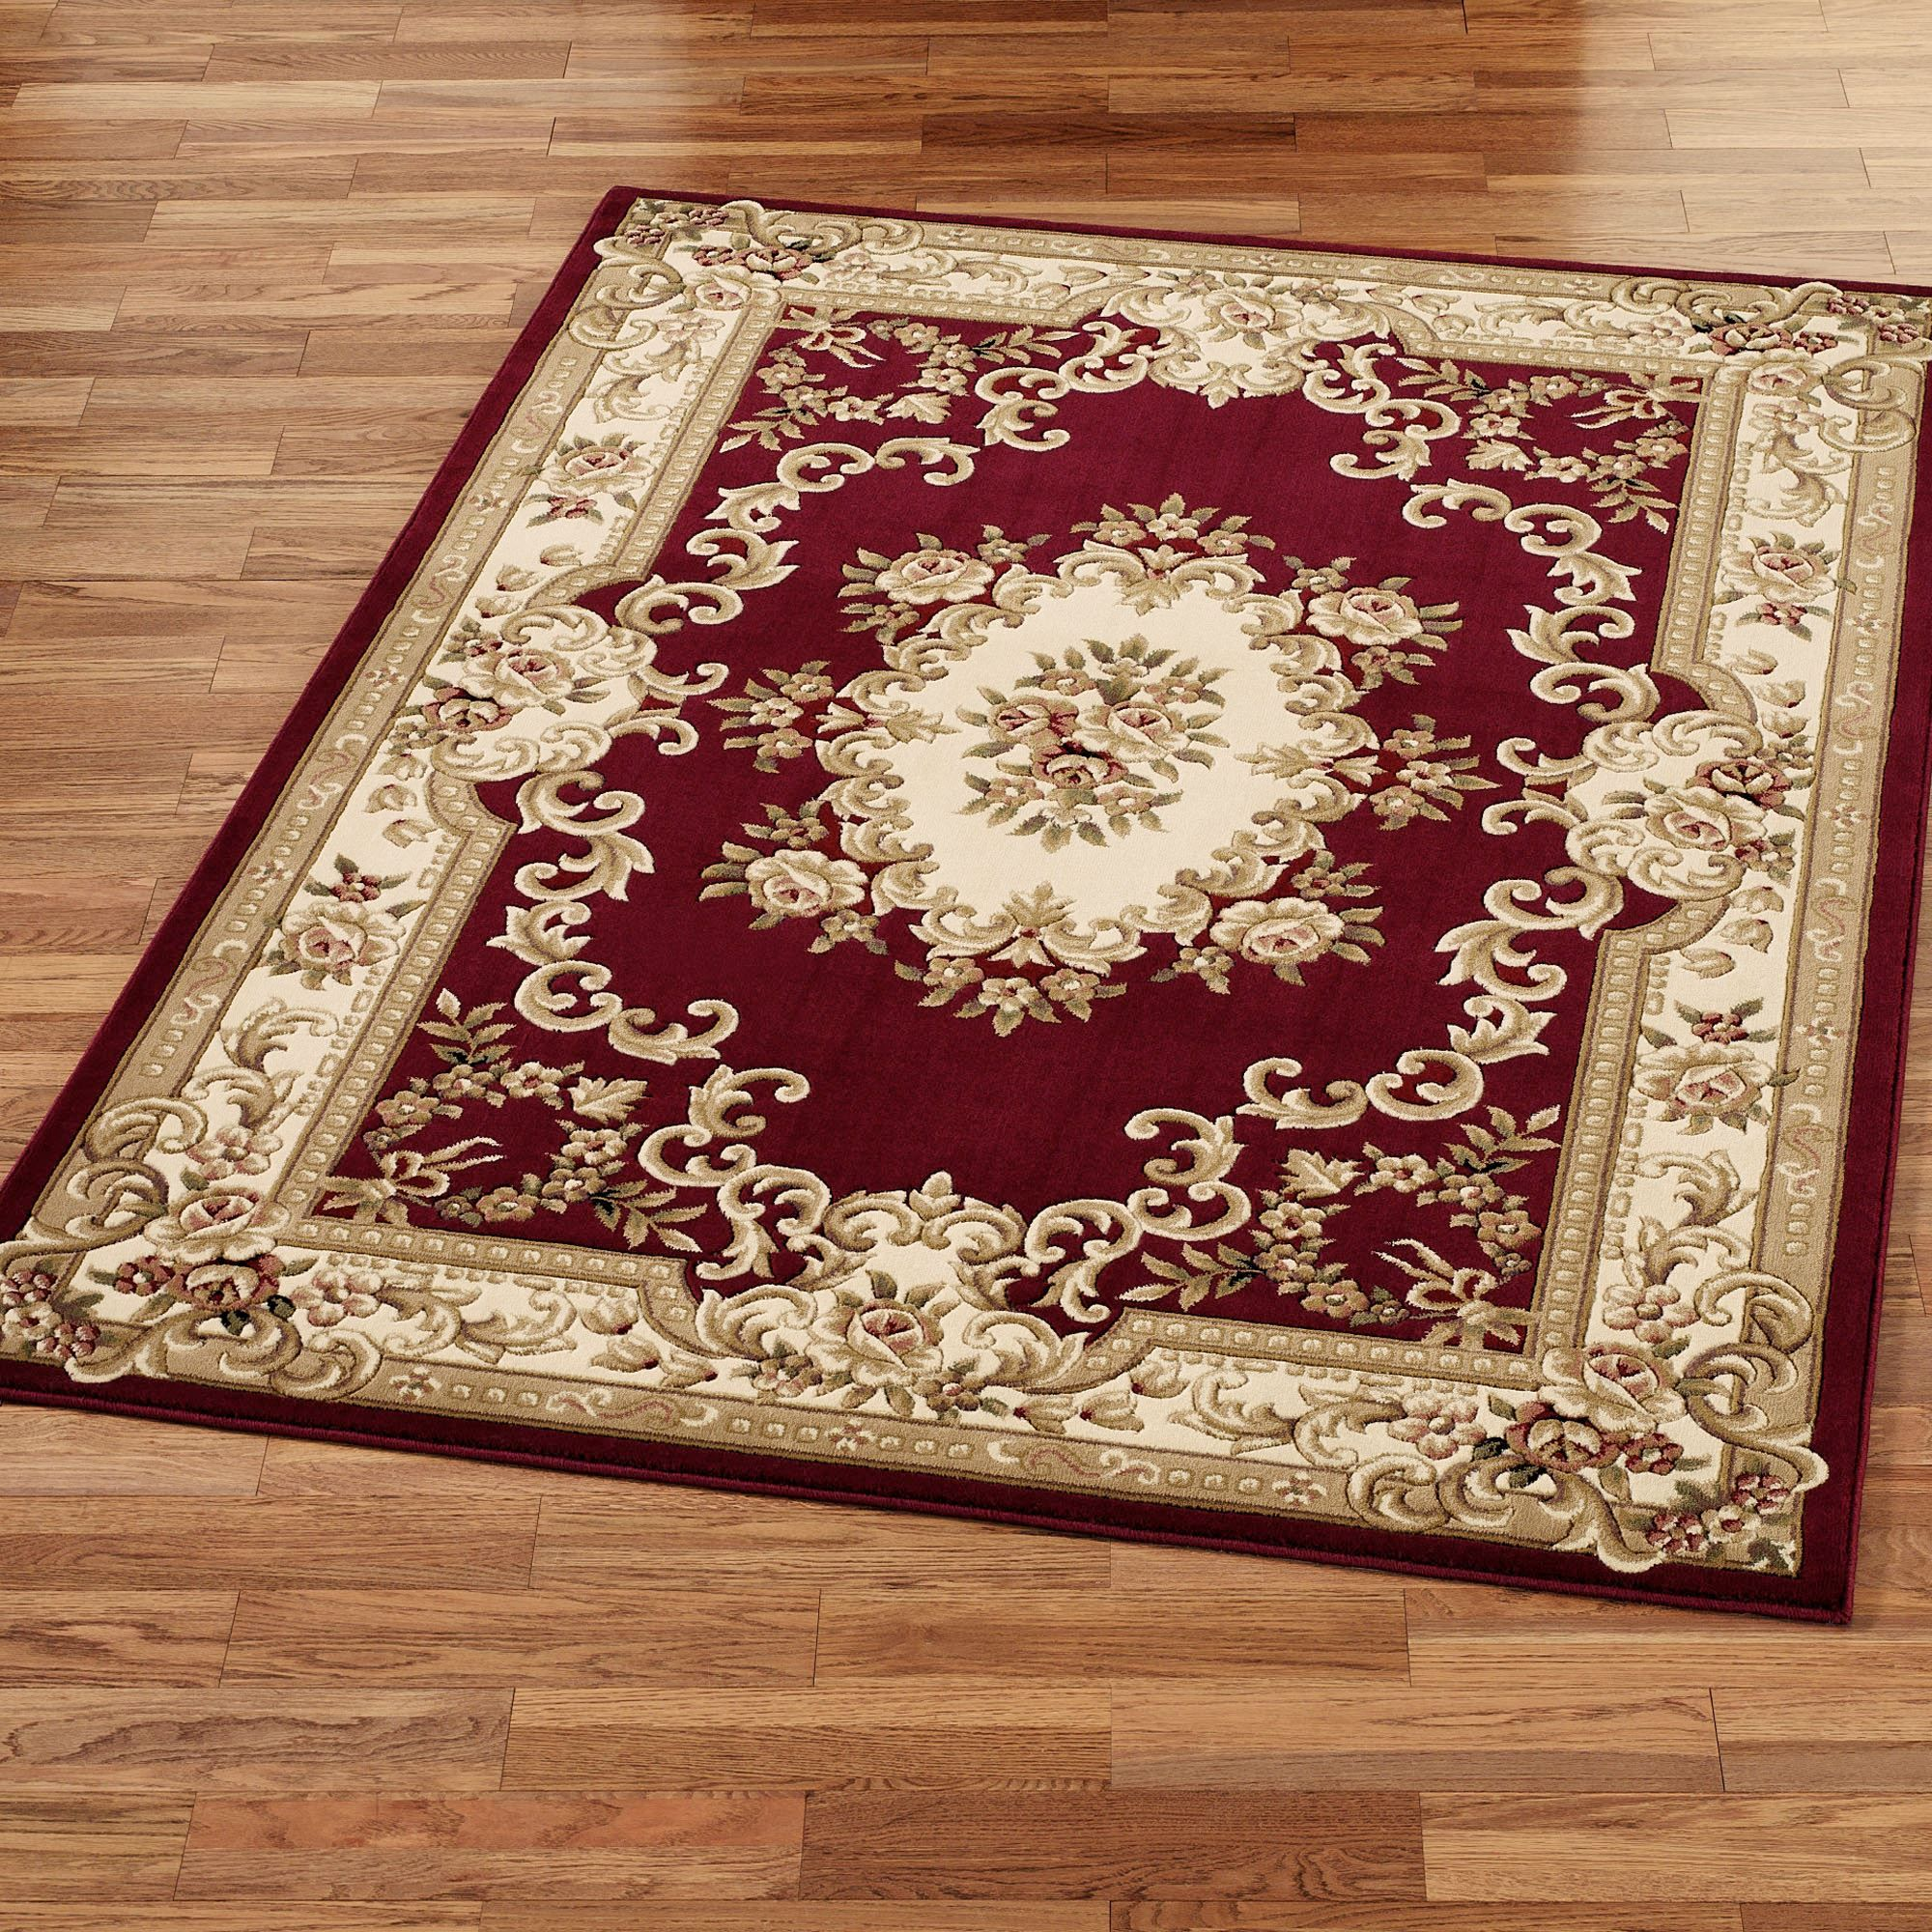 Imperial aubusson area rugs victorian area rugs